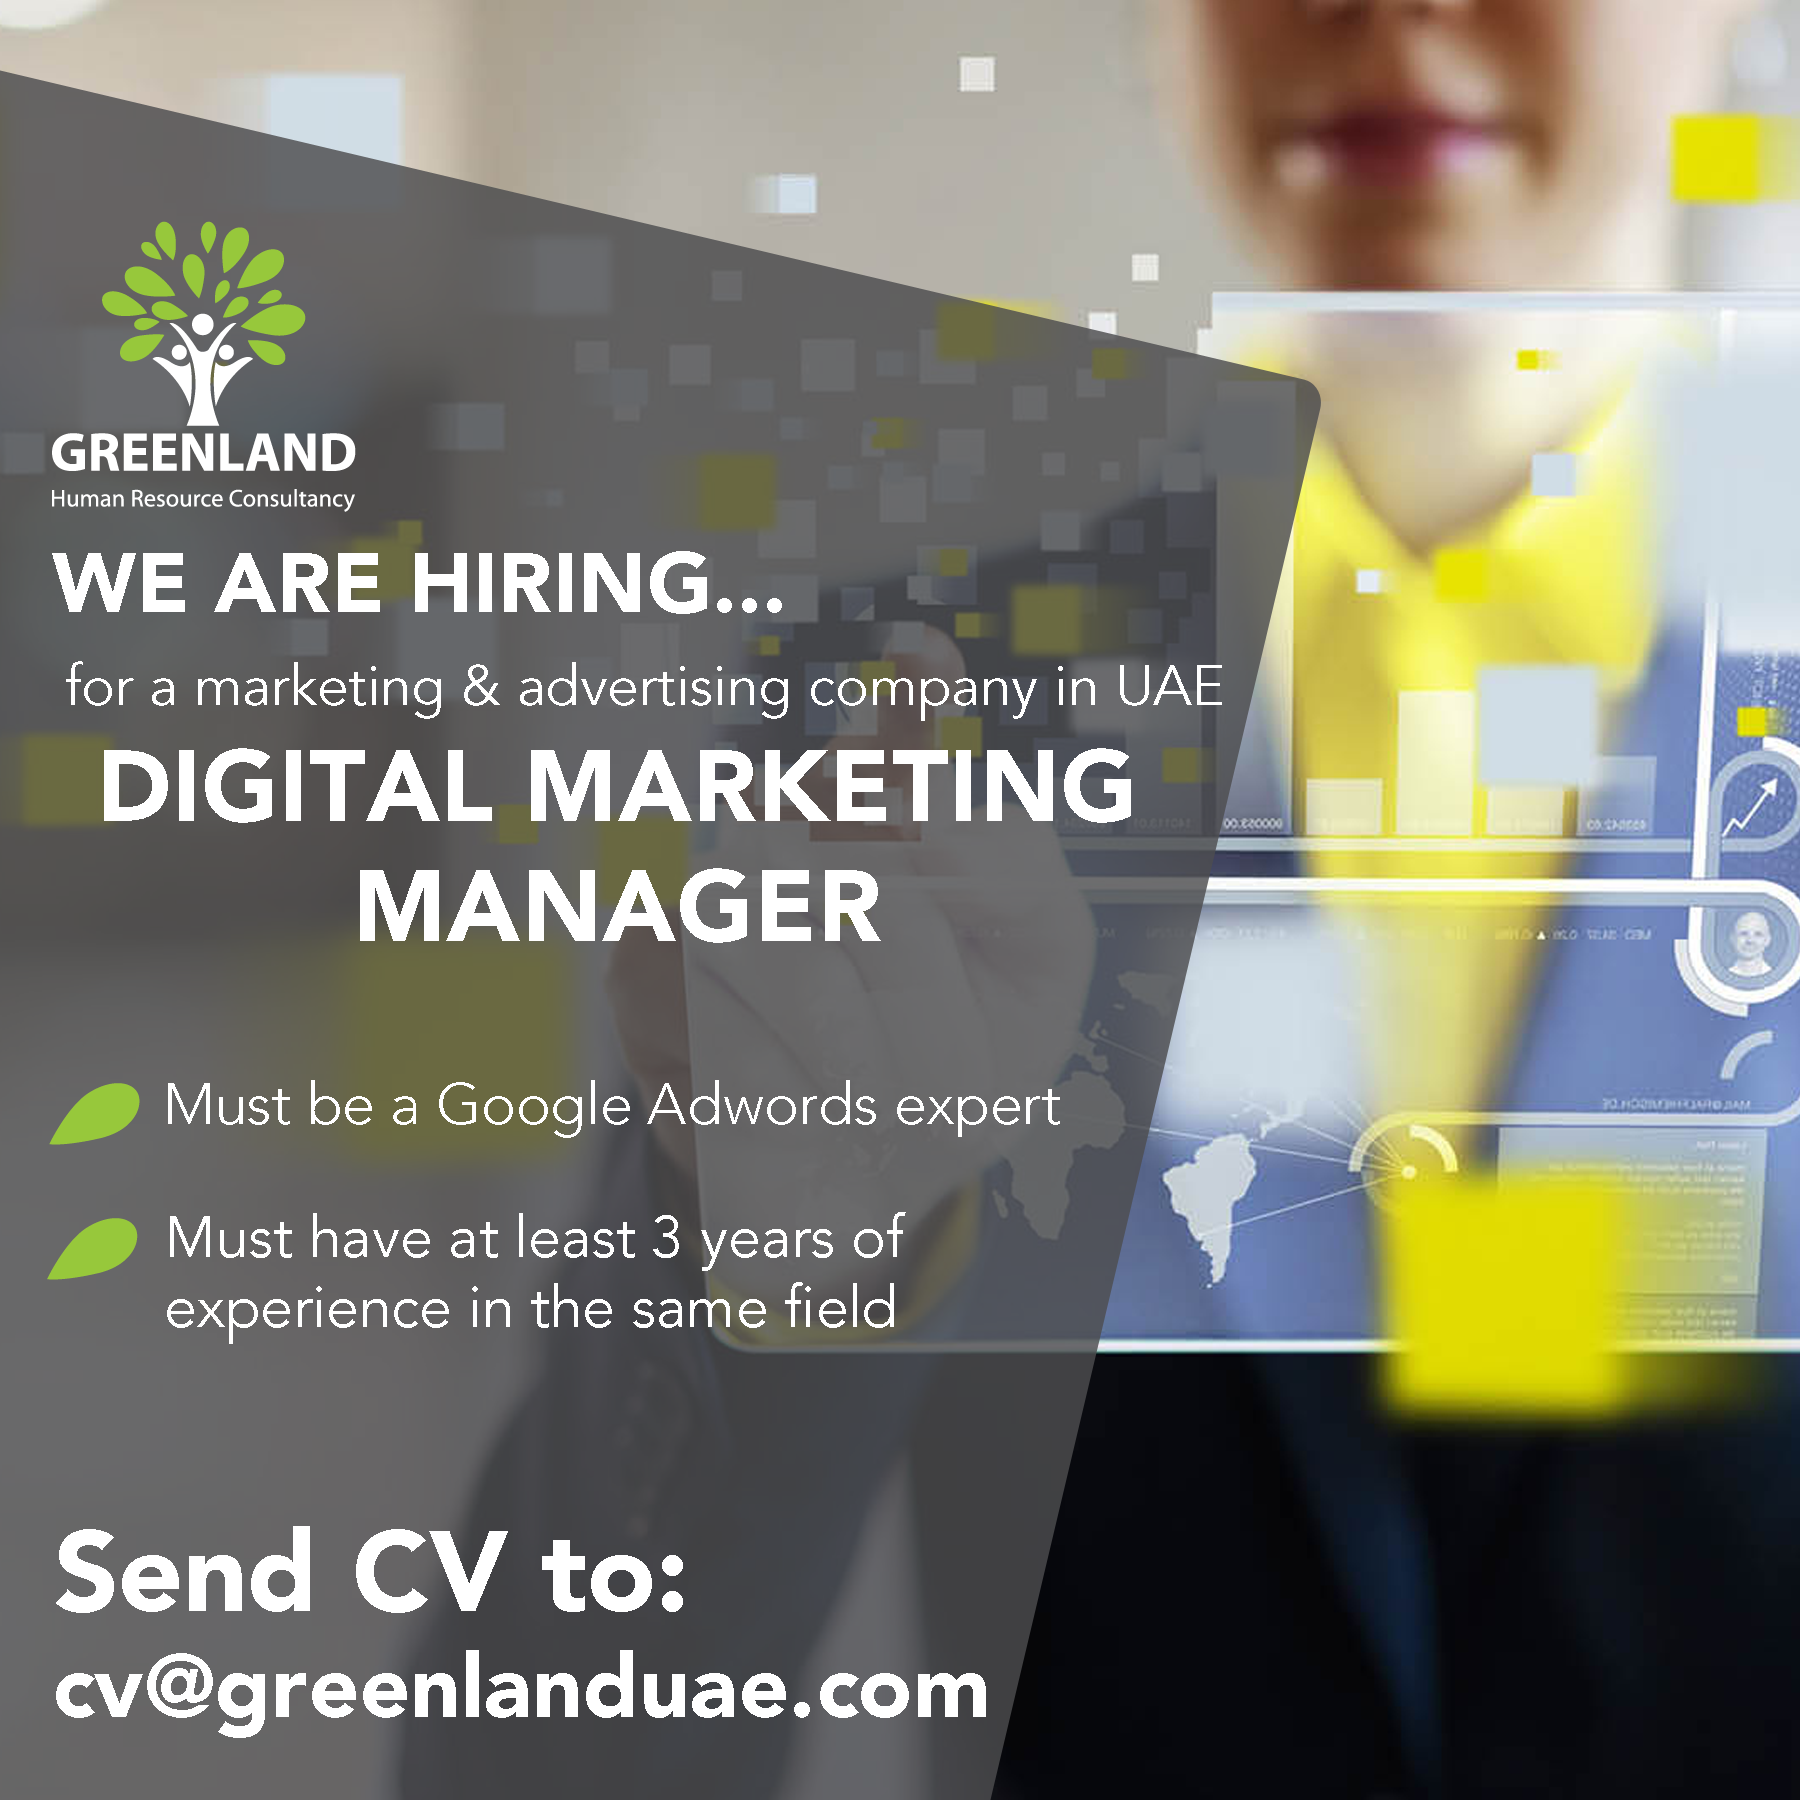 We are #hiring a DIGITAL MARKETING MANAGER for a marketing and ...